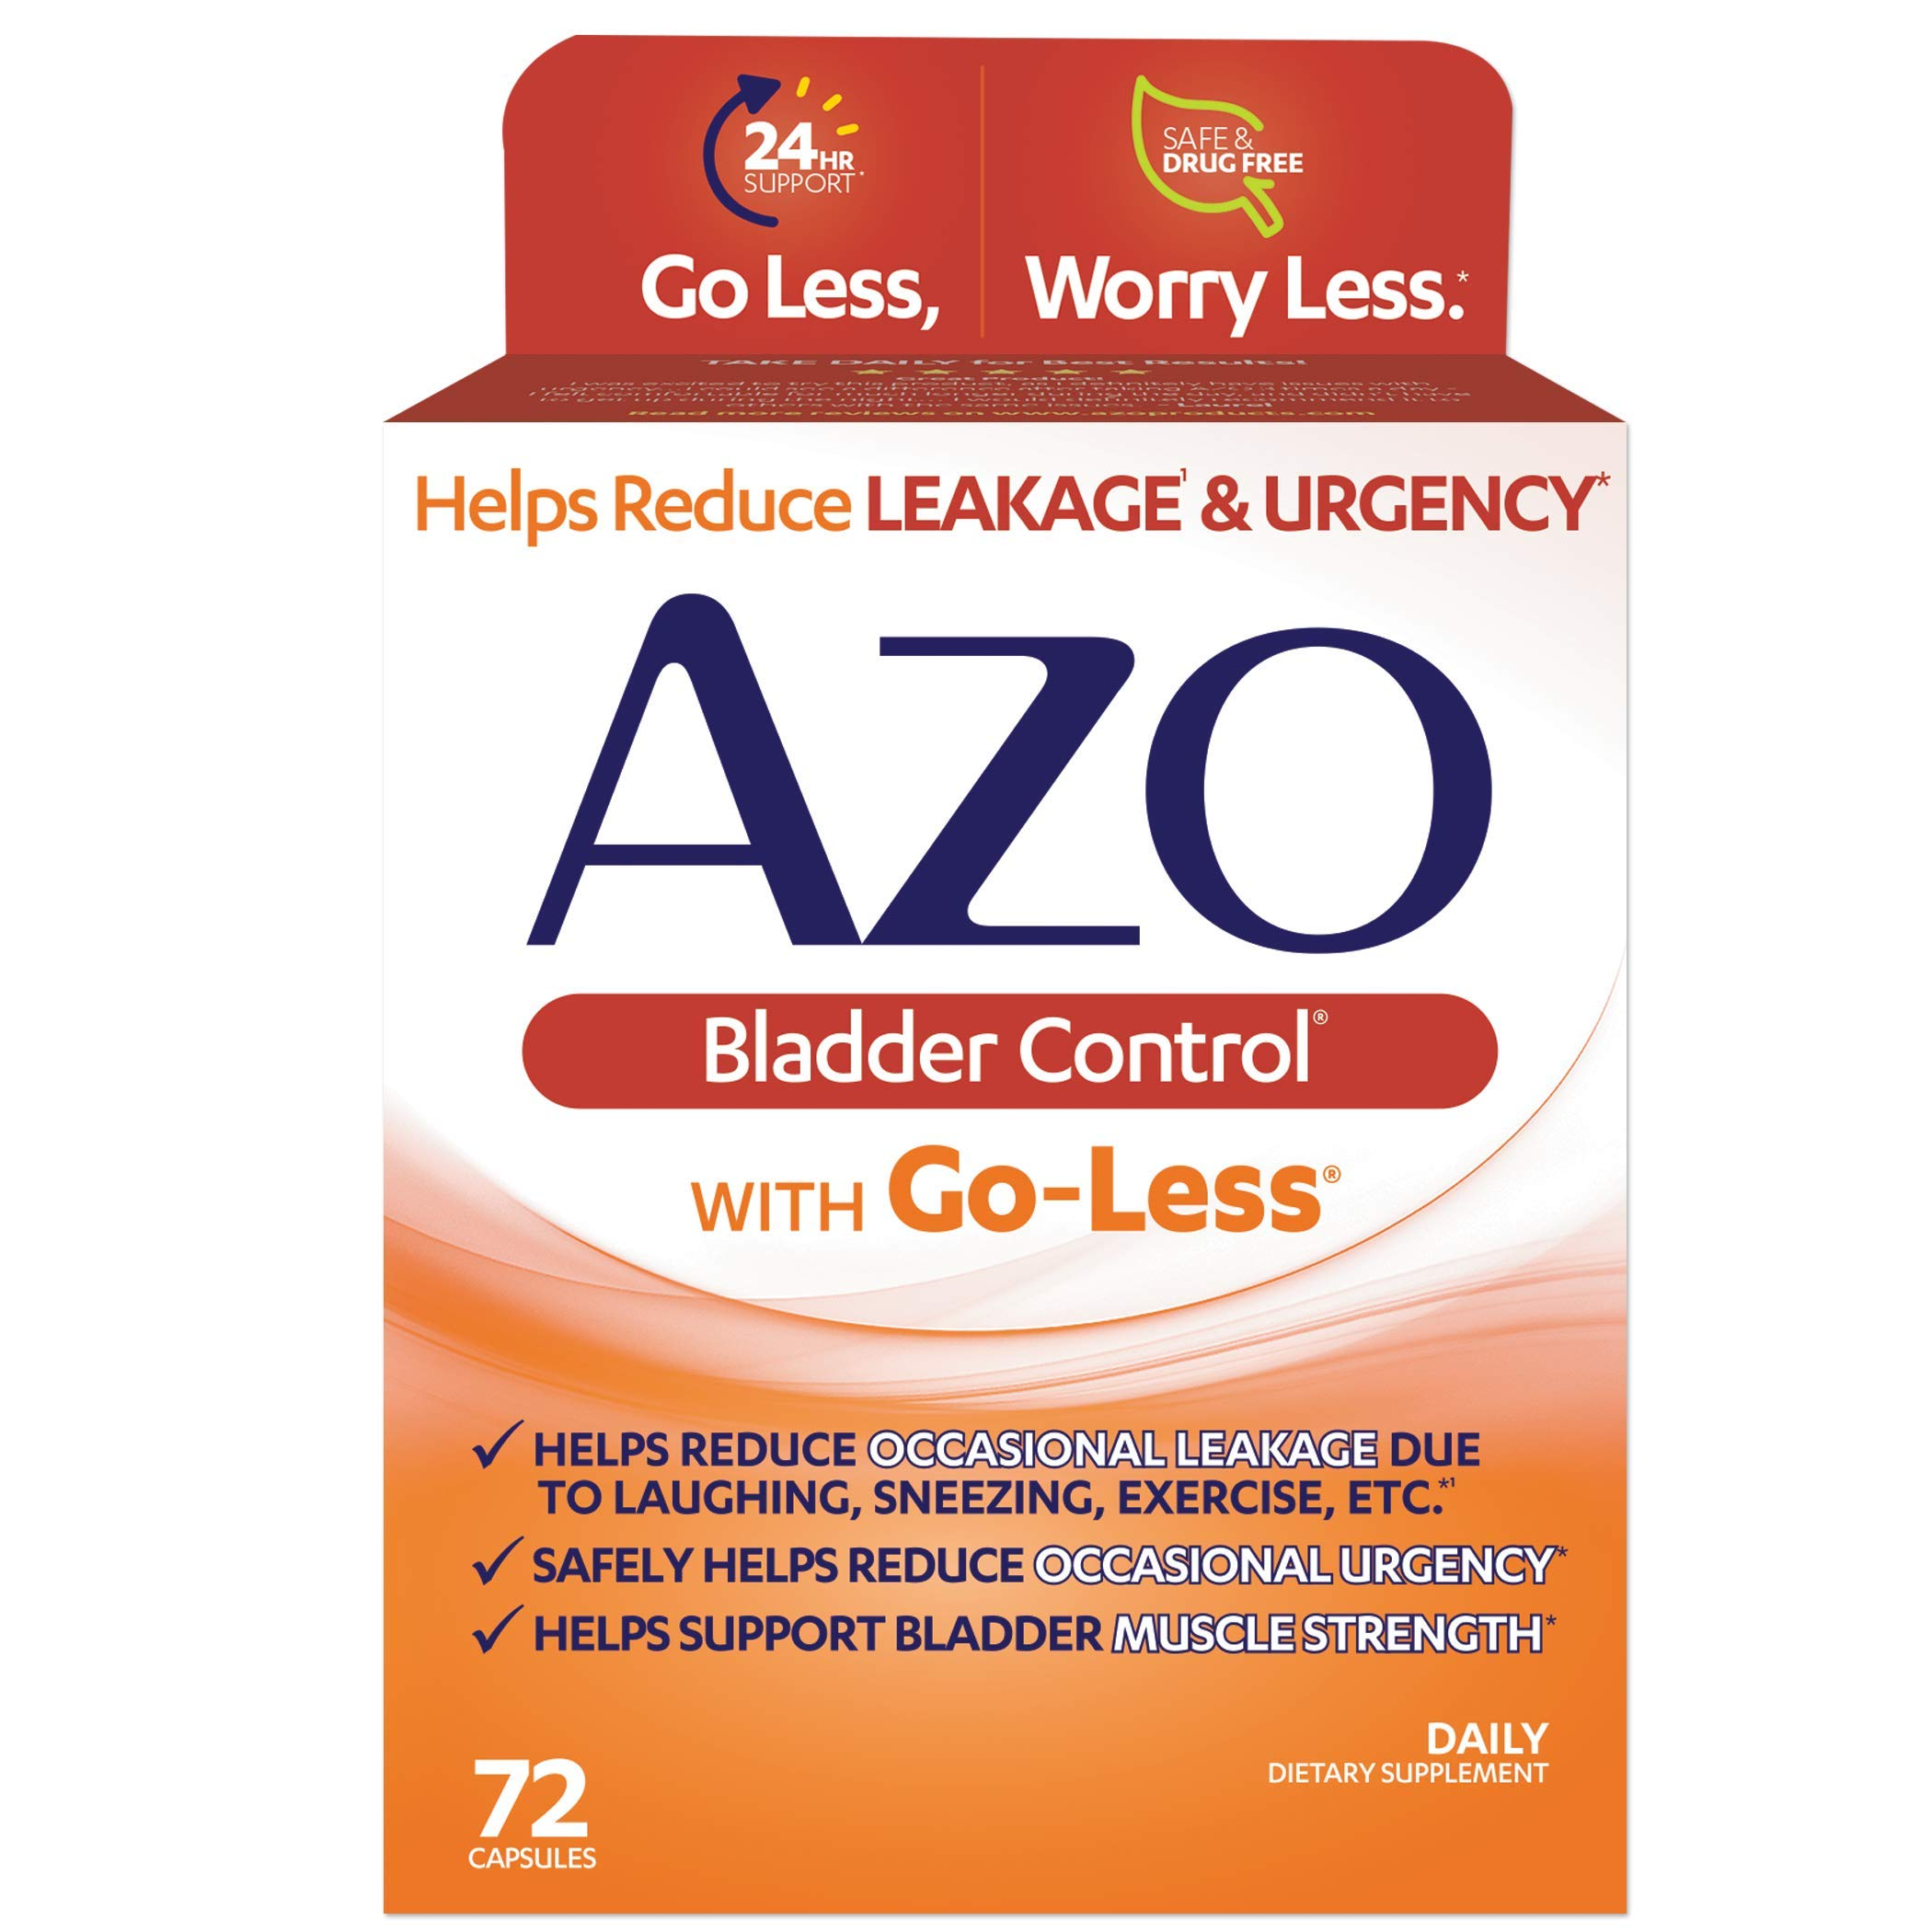 AZO Bladder Control with Go-Less Daily Supplement | Helps Reduce Occasional Urgency* | Helps reduce occasional leakage due to laughing, sneezing and exercise††† | 72 Capsules